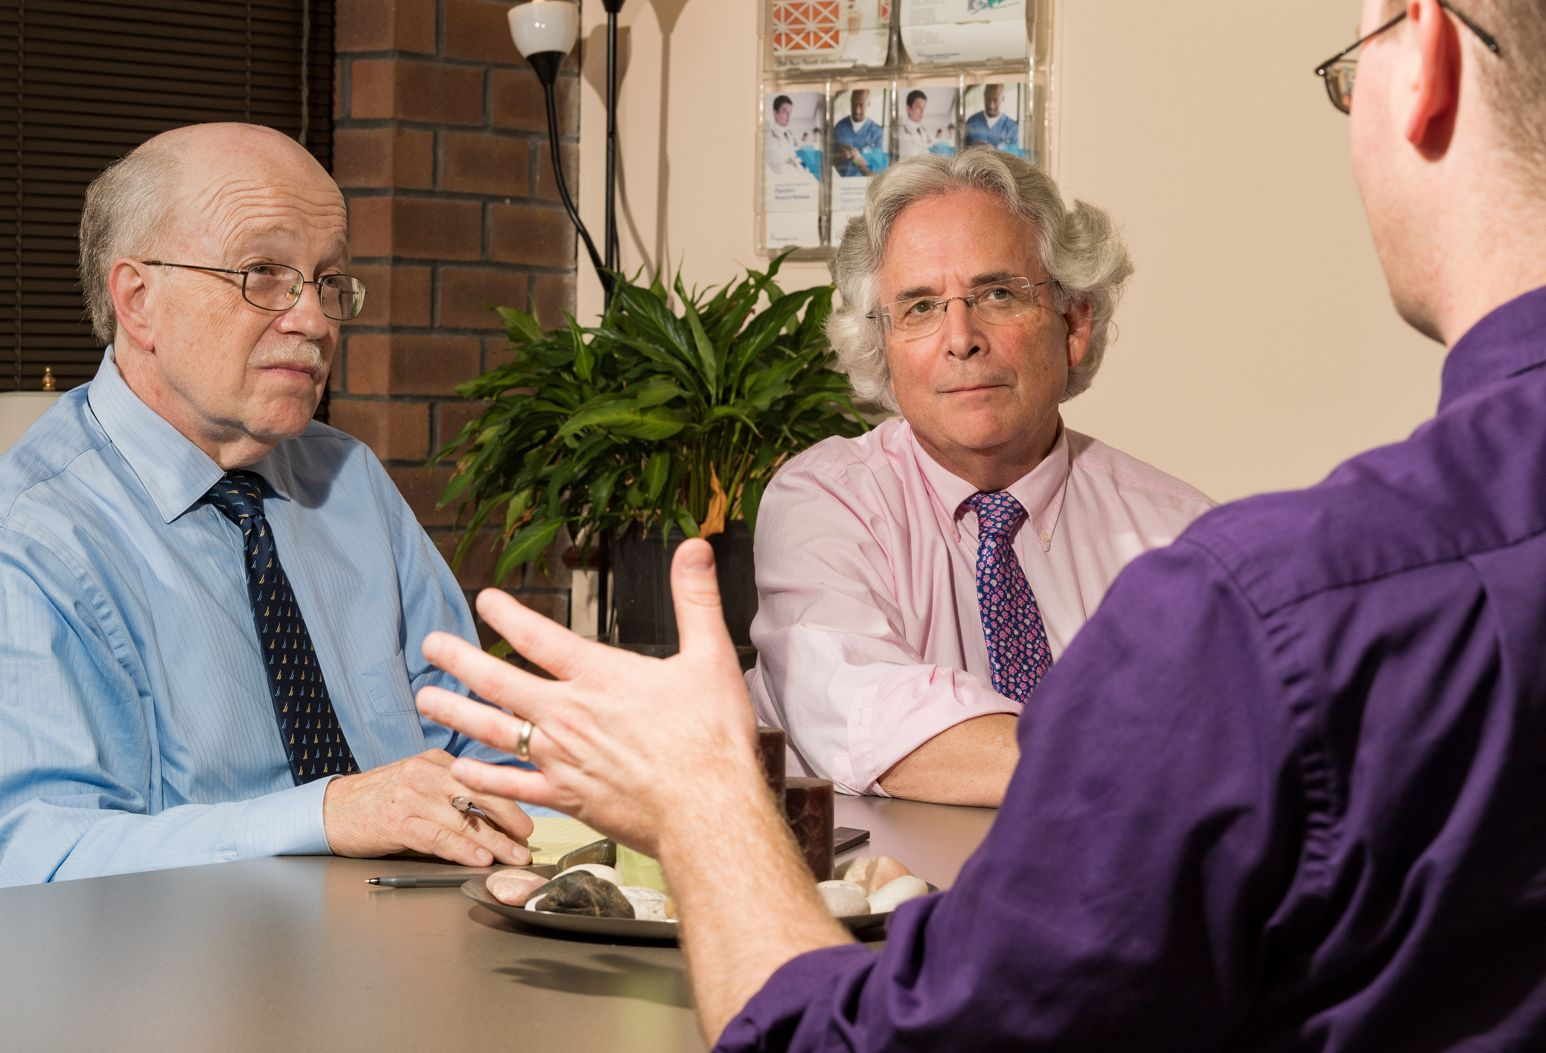 Curtis Reisinger, PhD, and Jeffrey Selzer, MD, consult a patient